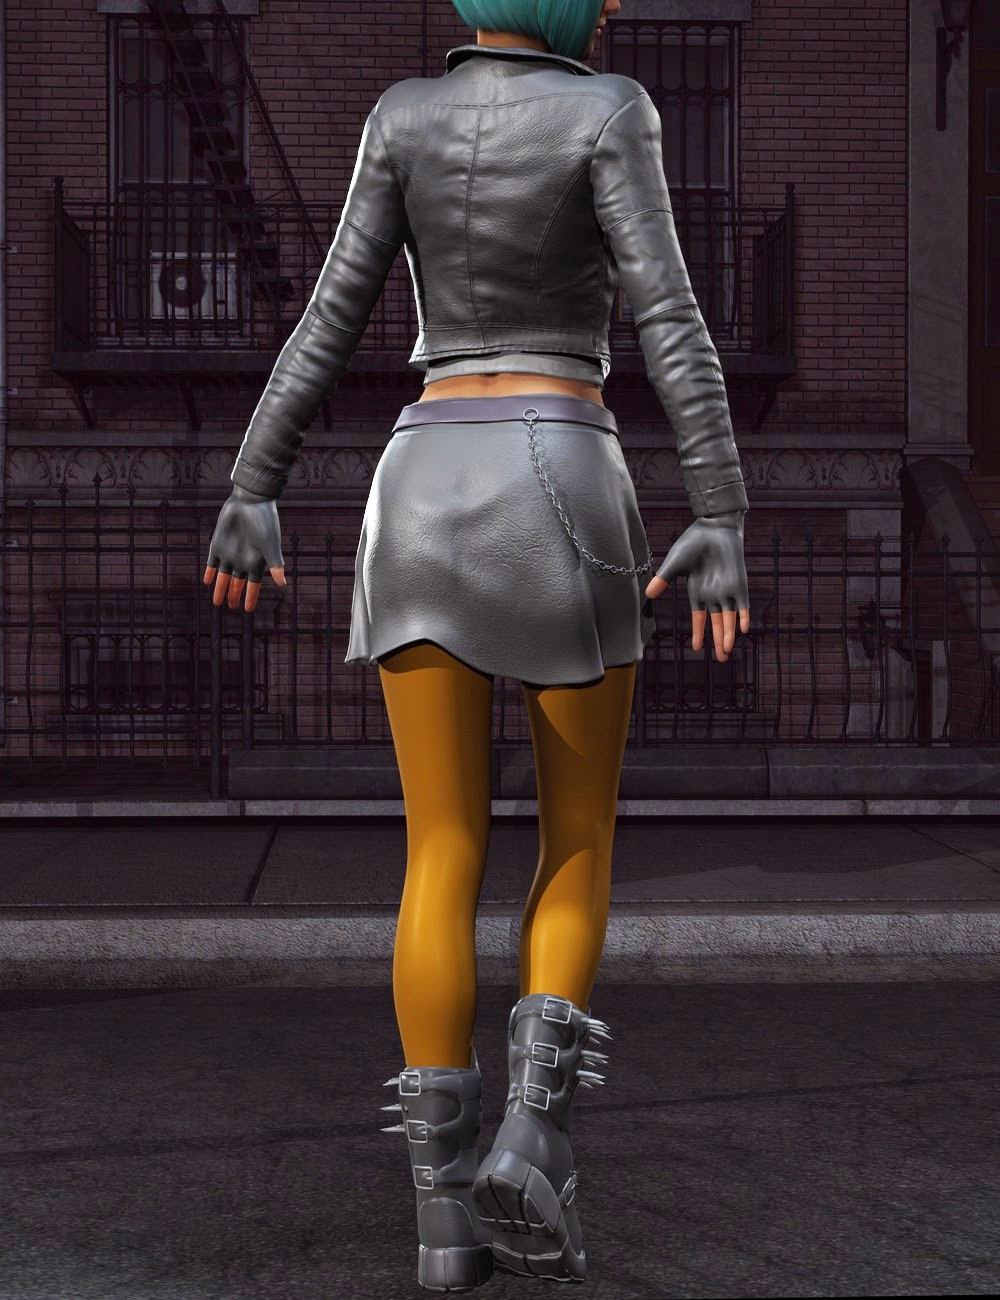 3d Models Art Zone - Anarchy for Genesis 2 Female(s)